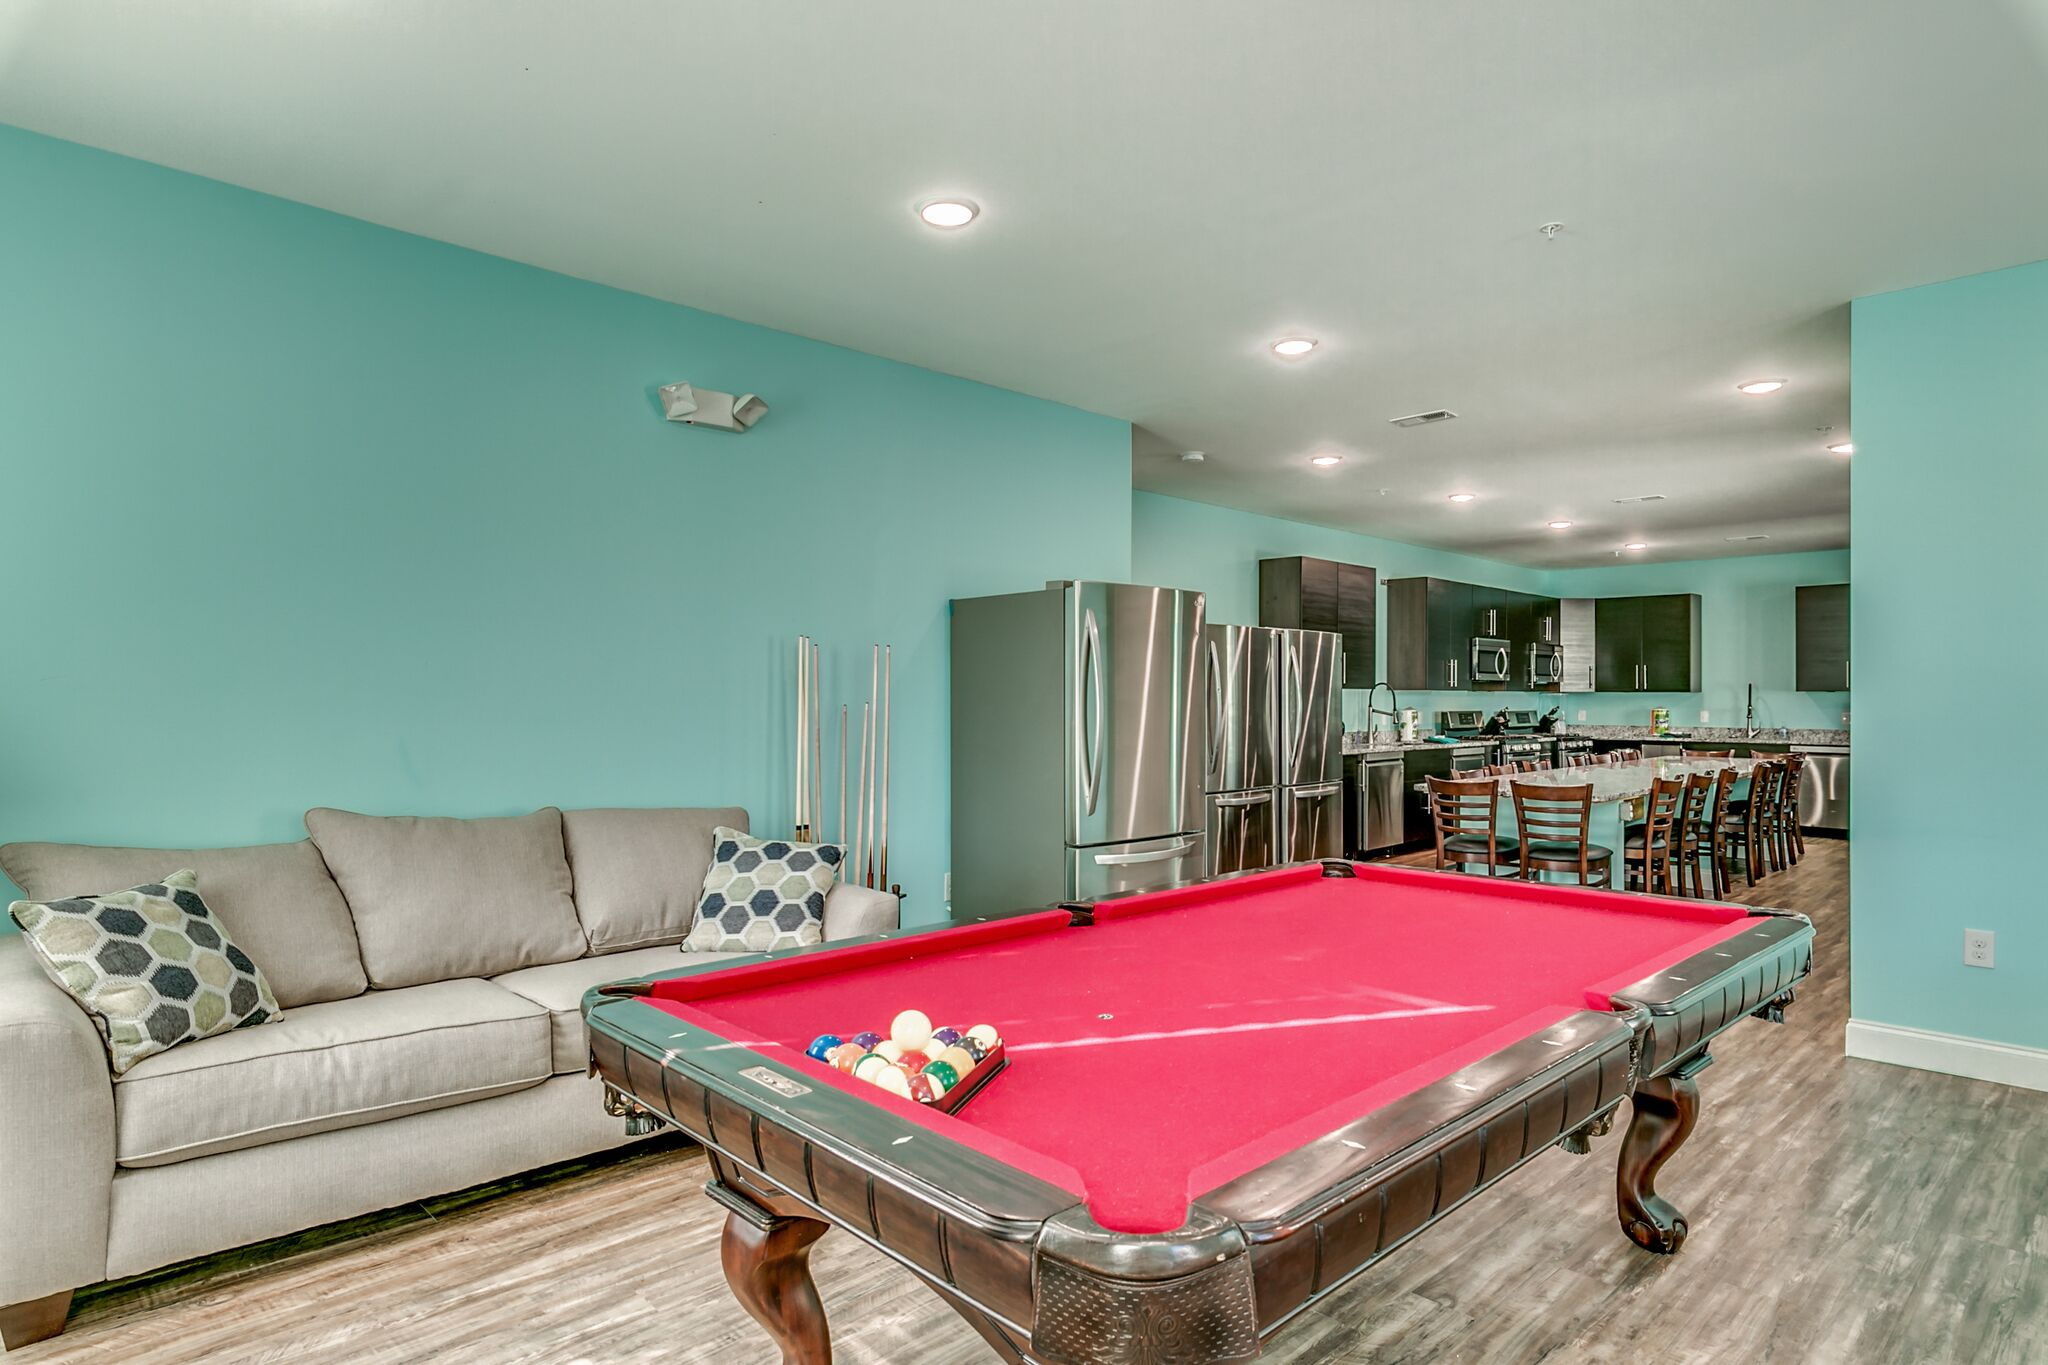 208 3rd Ave kitchen, long dining table and pool table.